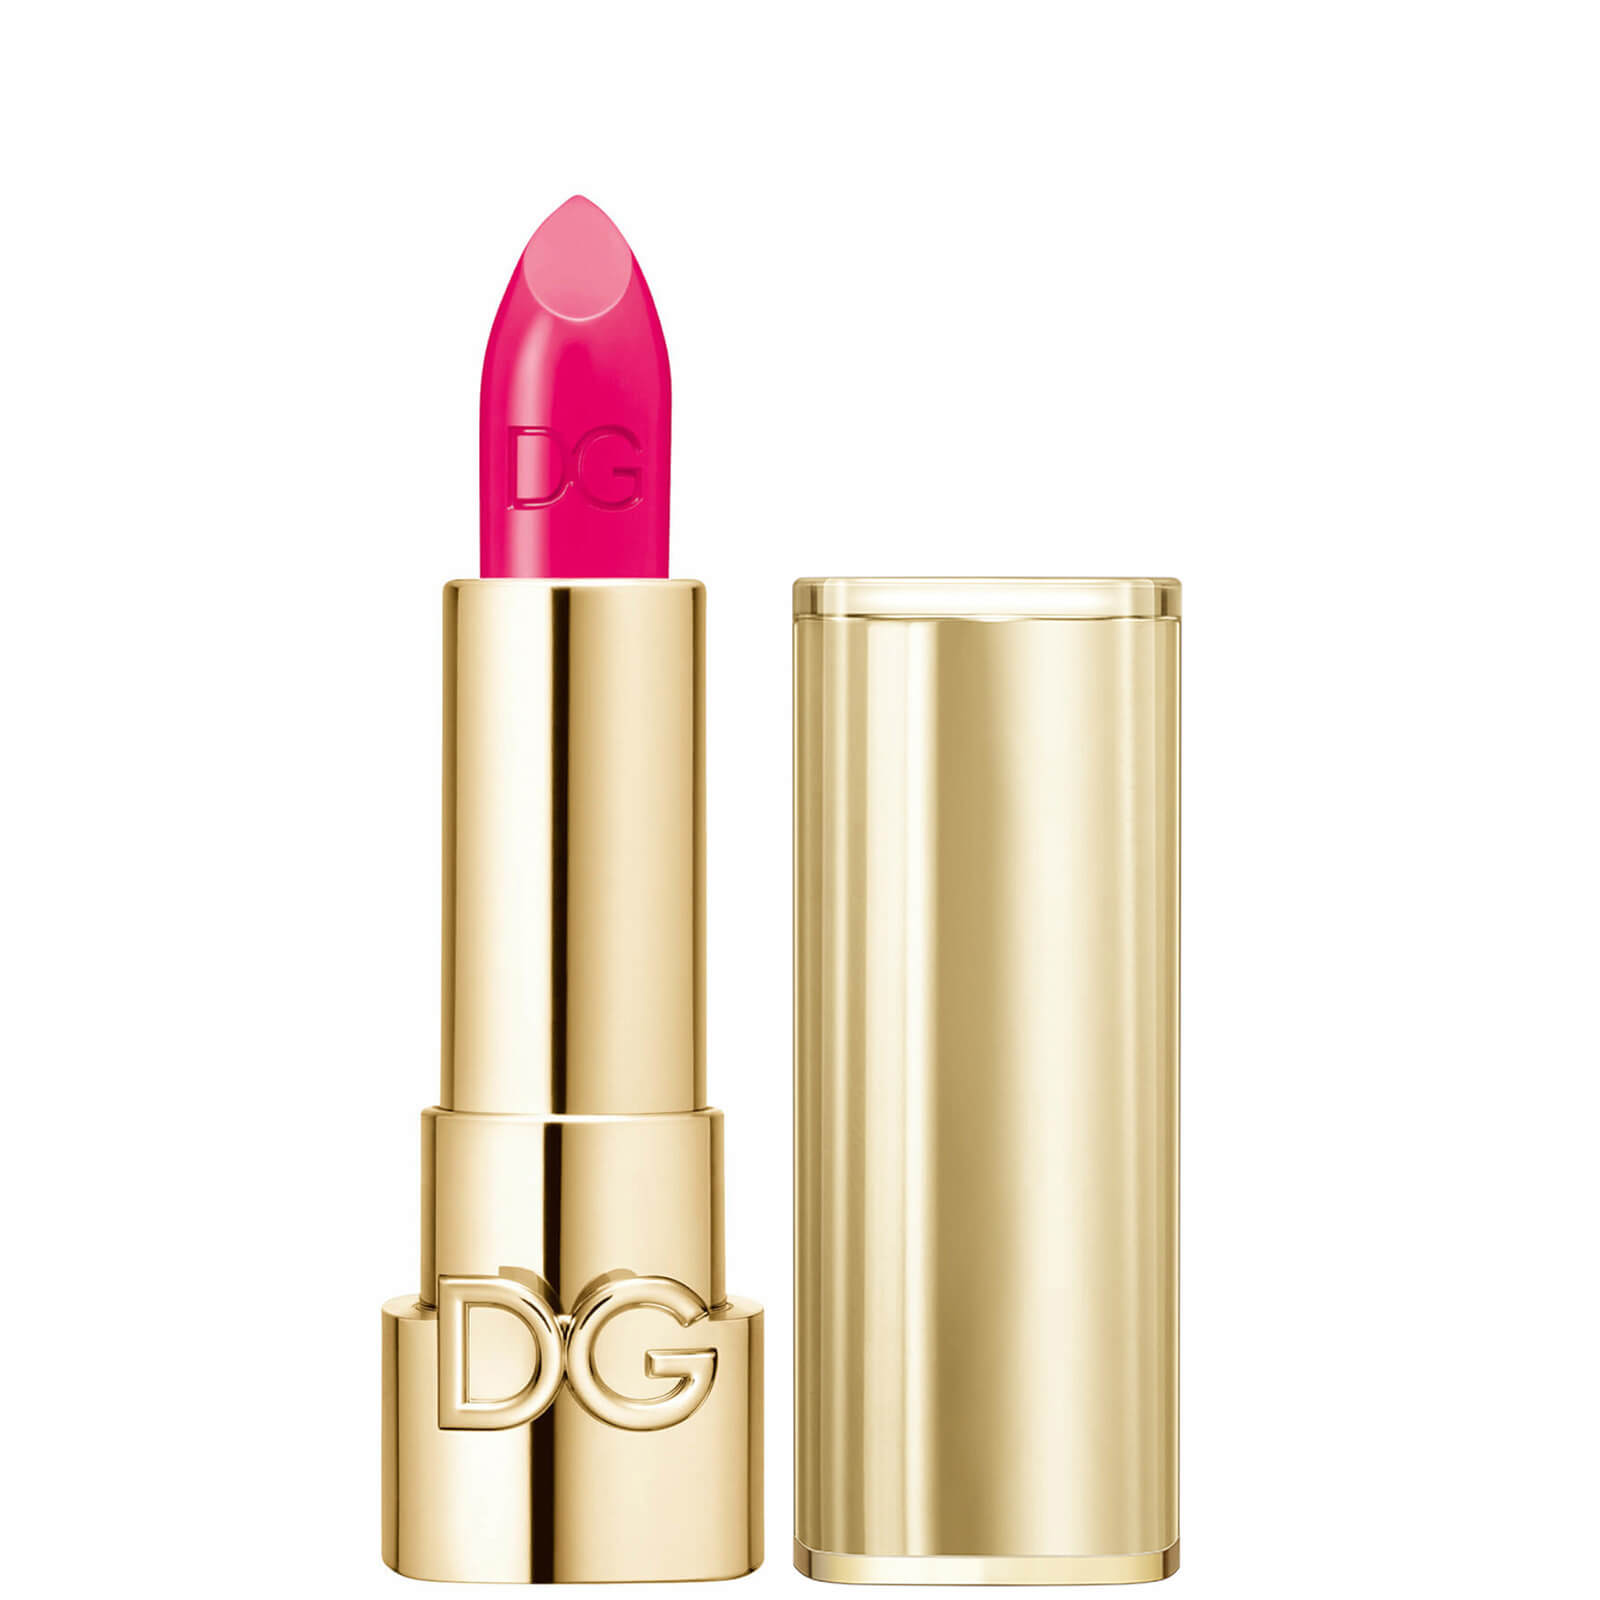 Dolce&Gabbana The Only One Lipstick + Cap (Gold) (Various Shades) - 280 Shock Flamingo